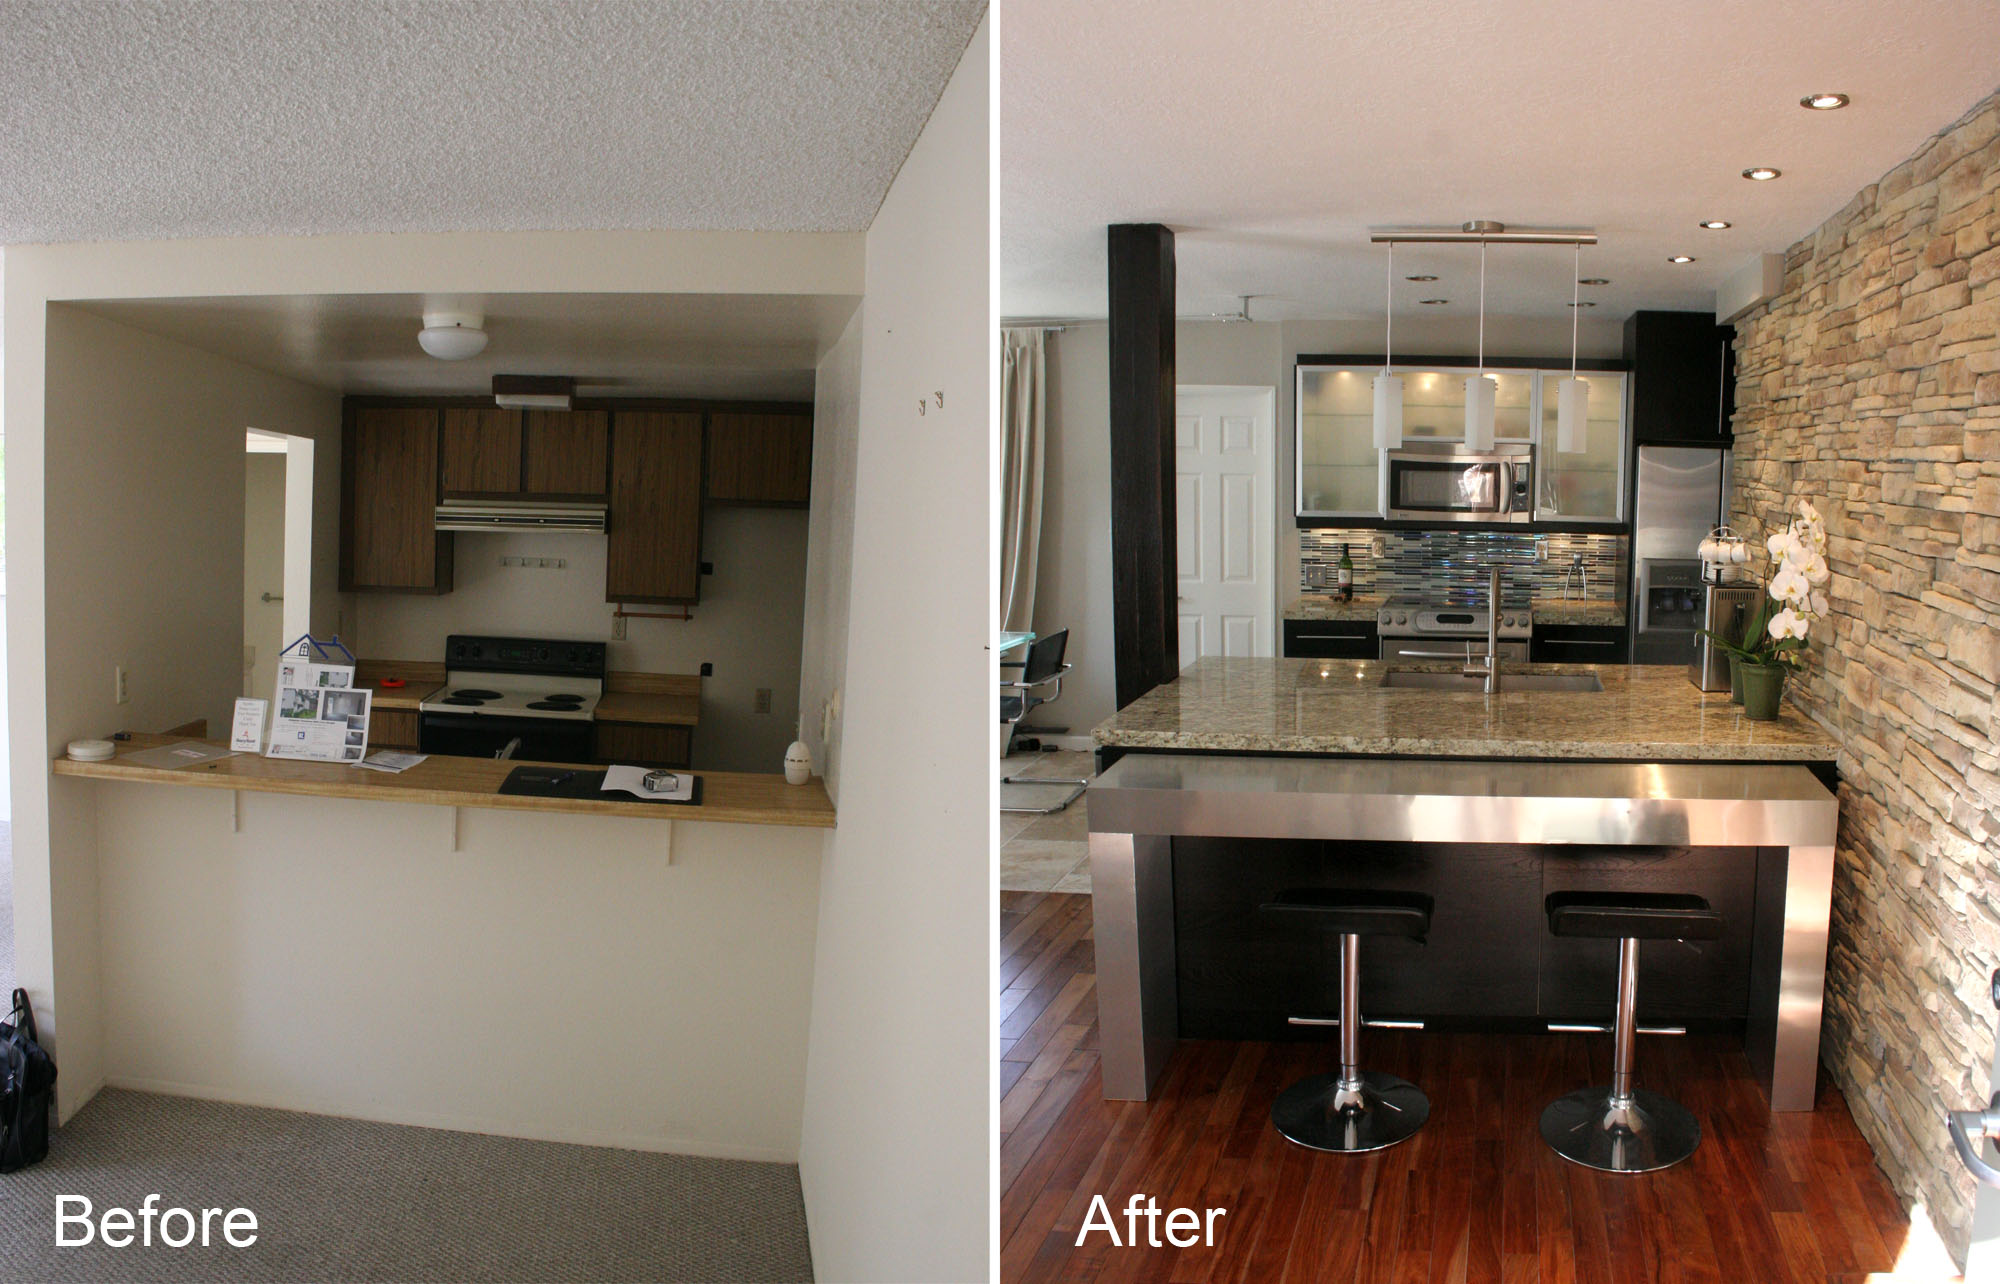 Before and after photo of a kitchen renovation.